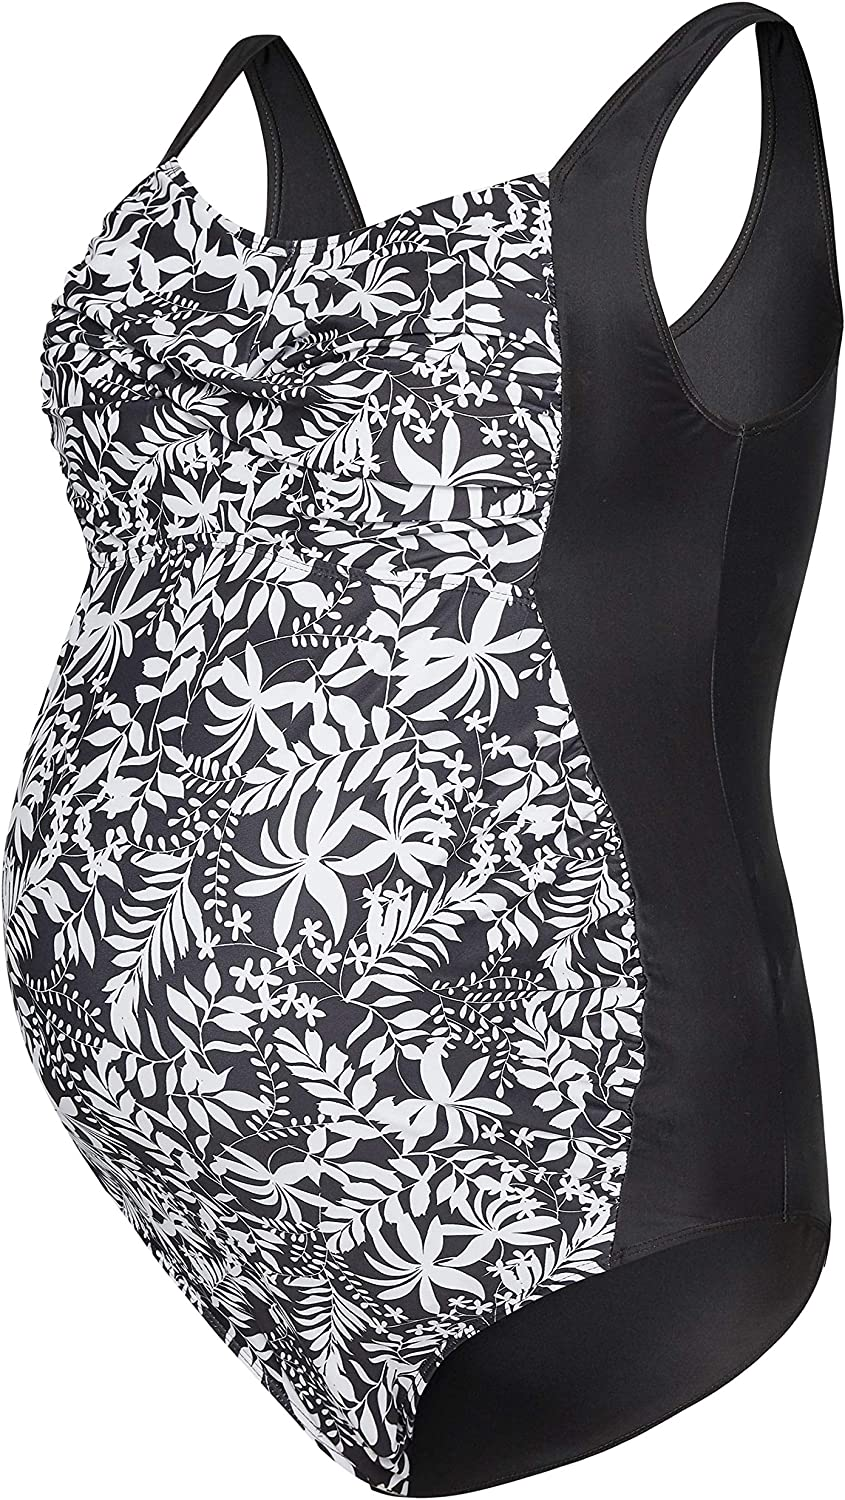 Yours Clothing Womens Bump IT UP Maternity Floral Ruched Swimsuit